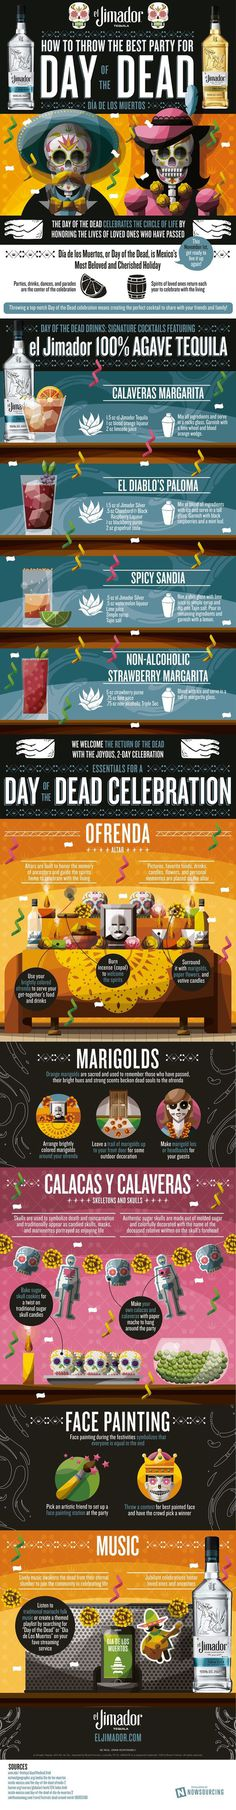 Contrary to popular belief, Day of the Dead isn't the same as Halloween. Learn more from this infographic!